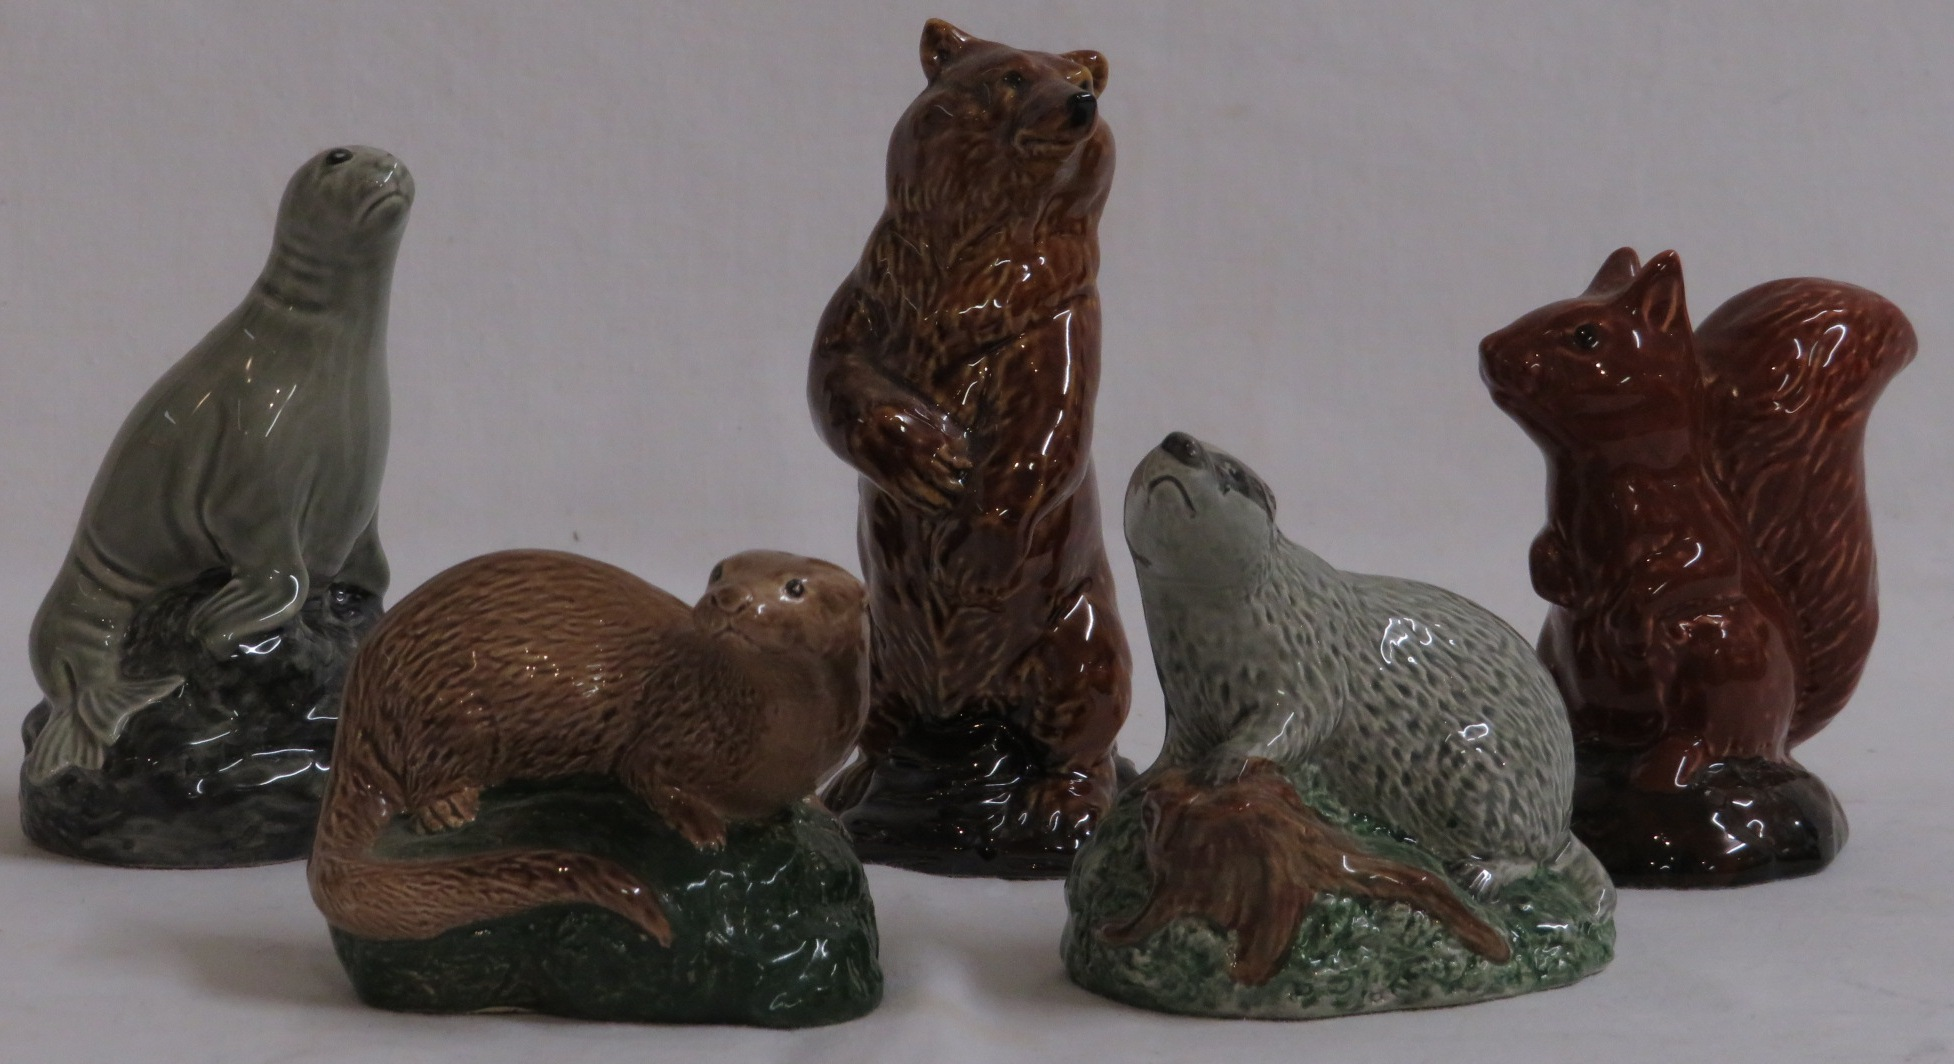 Lot 60 - Three Beswick Whyte & Mackay 50ml whisky decanters modelled by D. Lyttleton as animals with